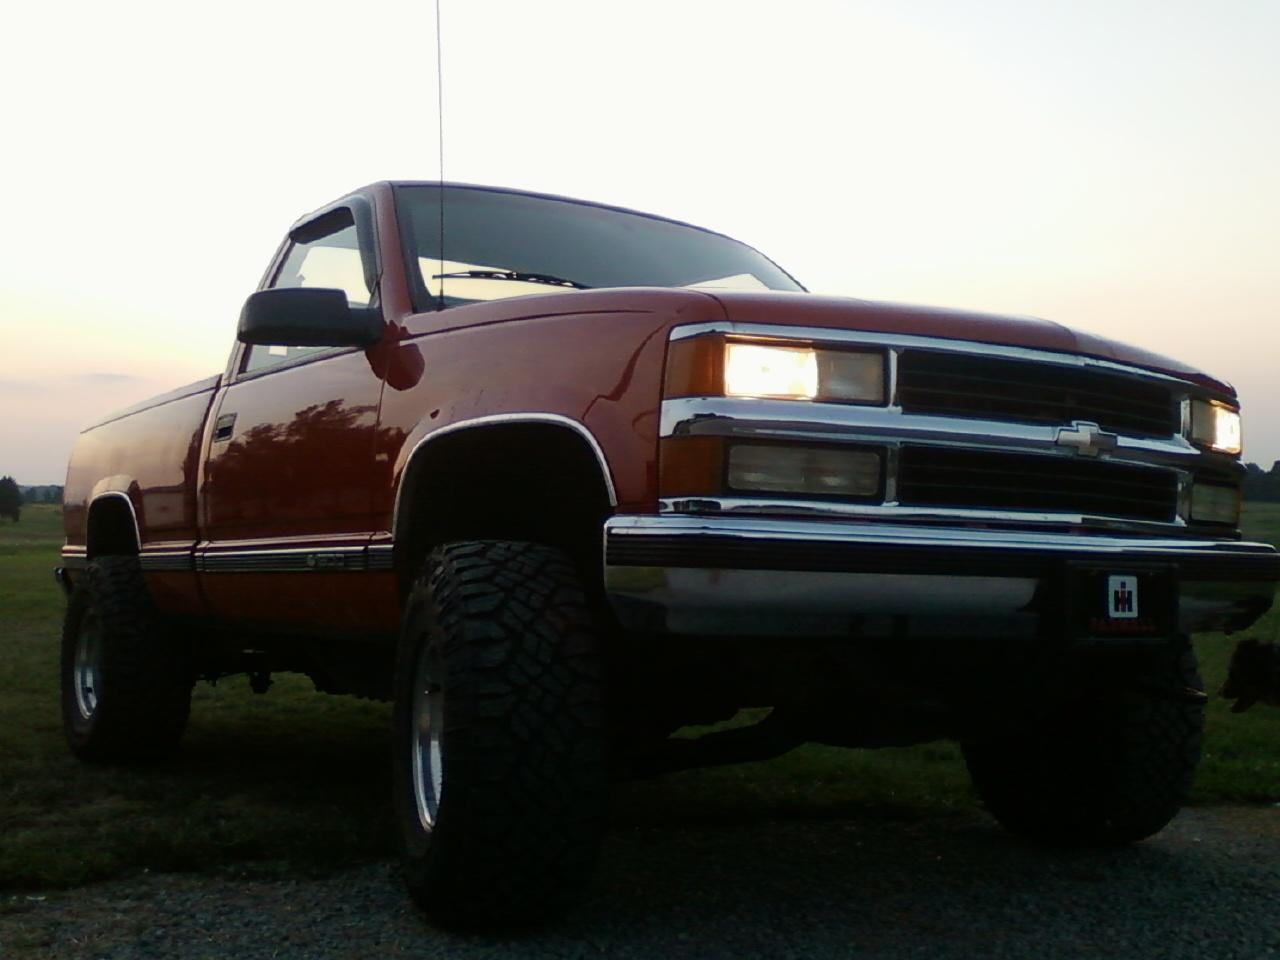 TENNESSEEZ71 1998 Chevrolet 1500 Regular Cab